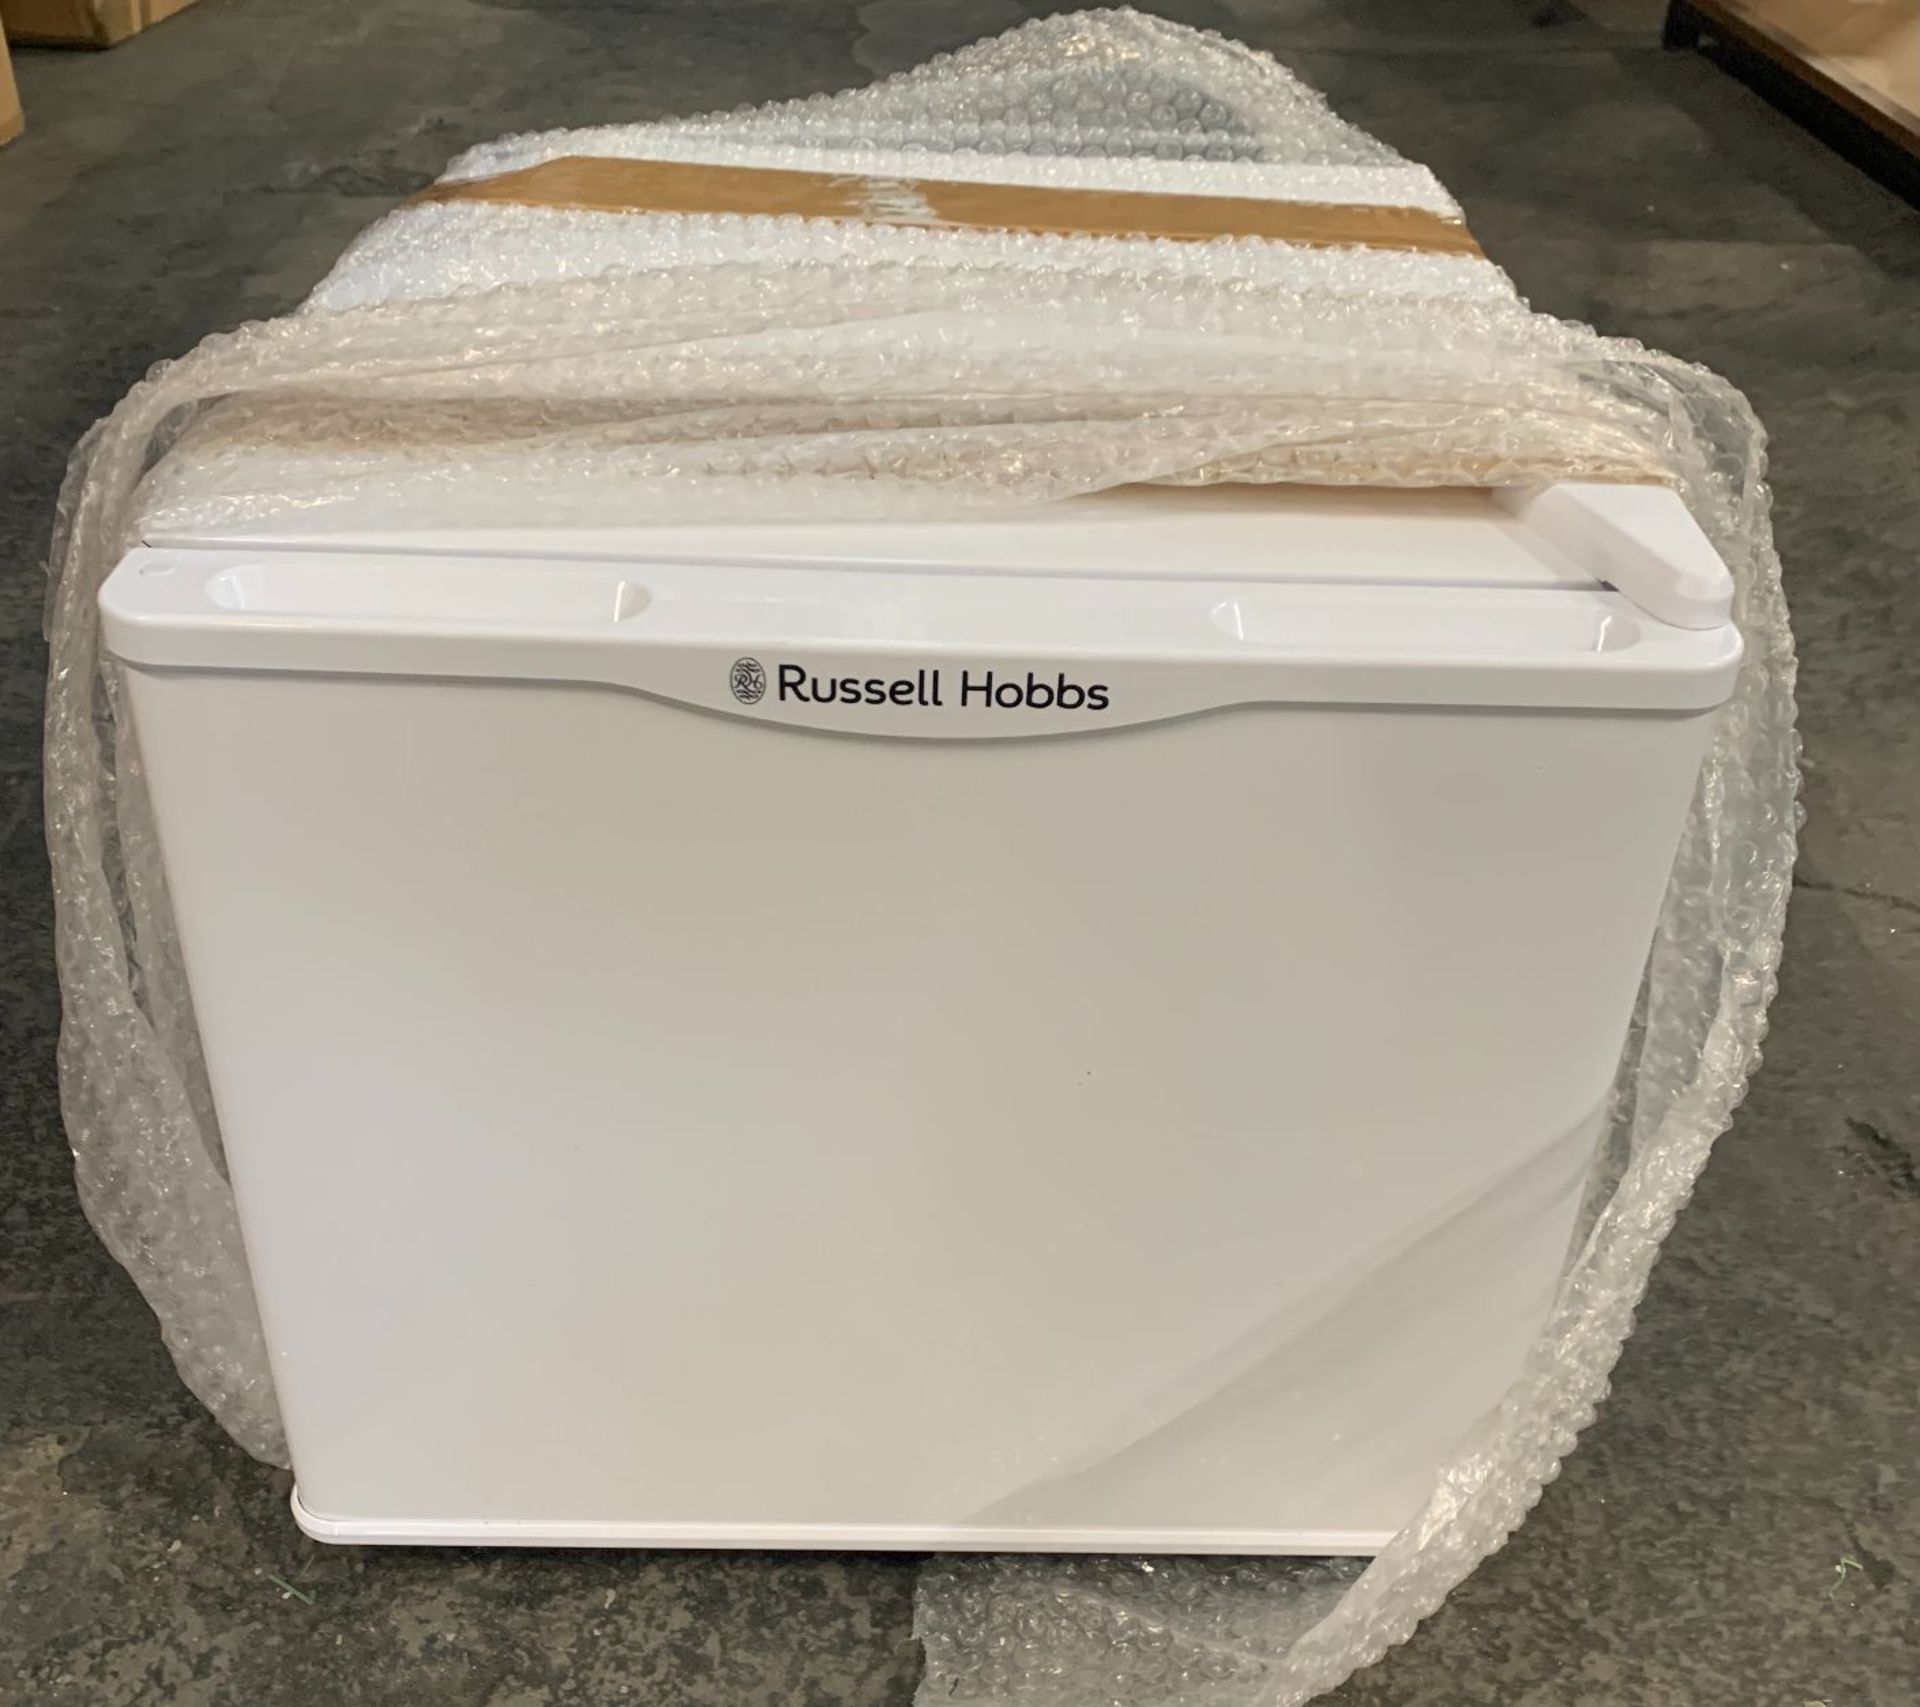 RUSSELL HOBBS RHCLRF17 TABLE TOP COOLER